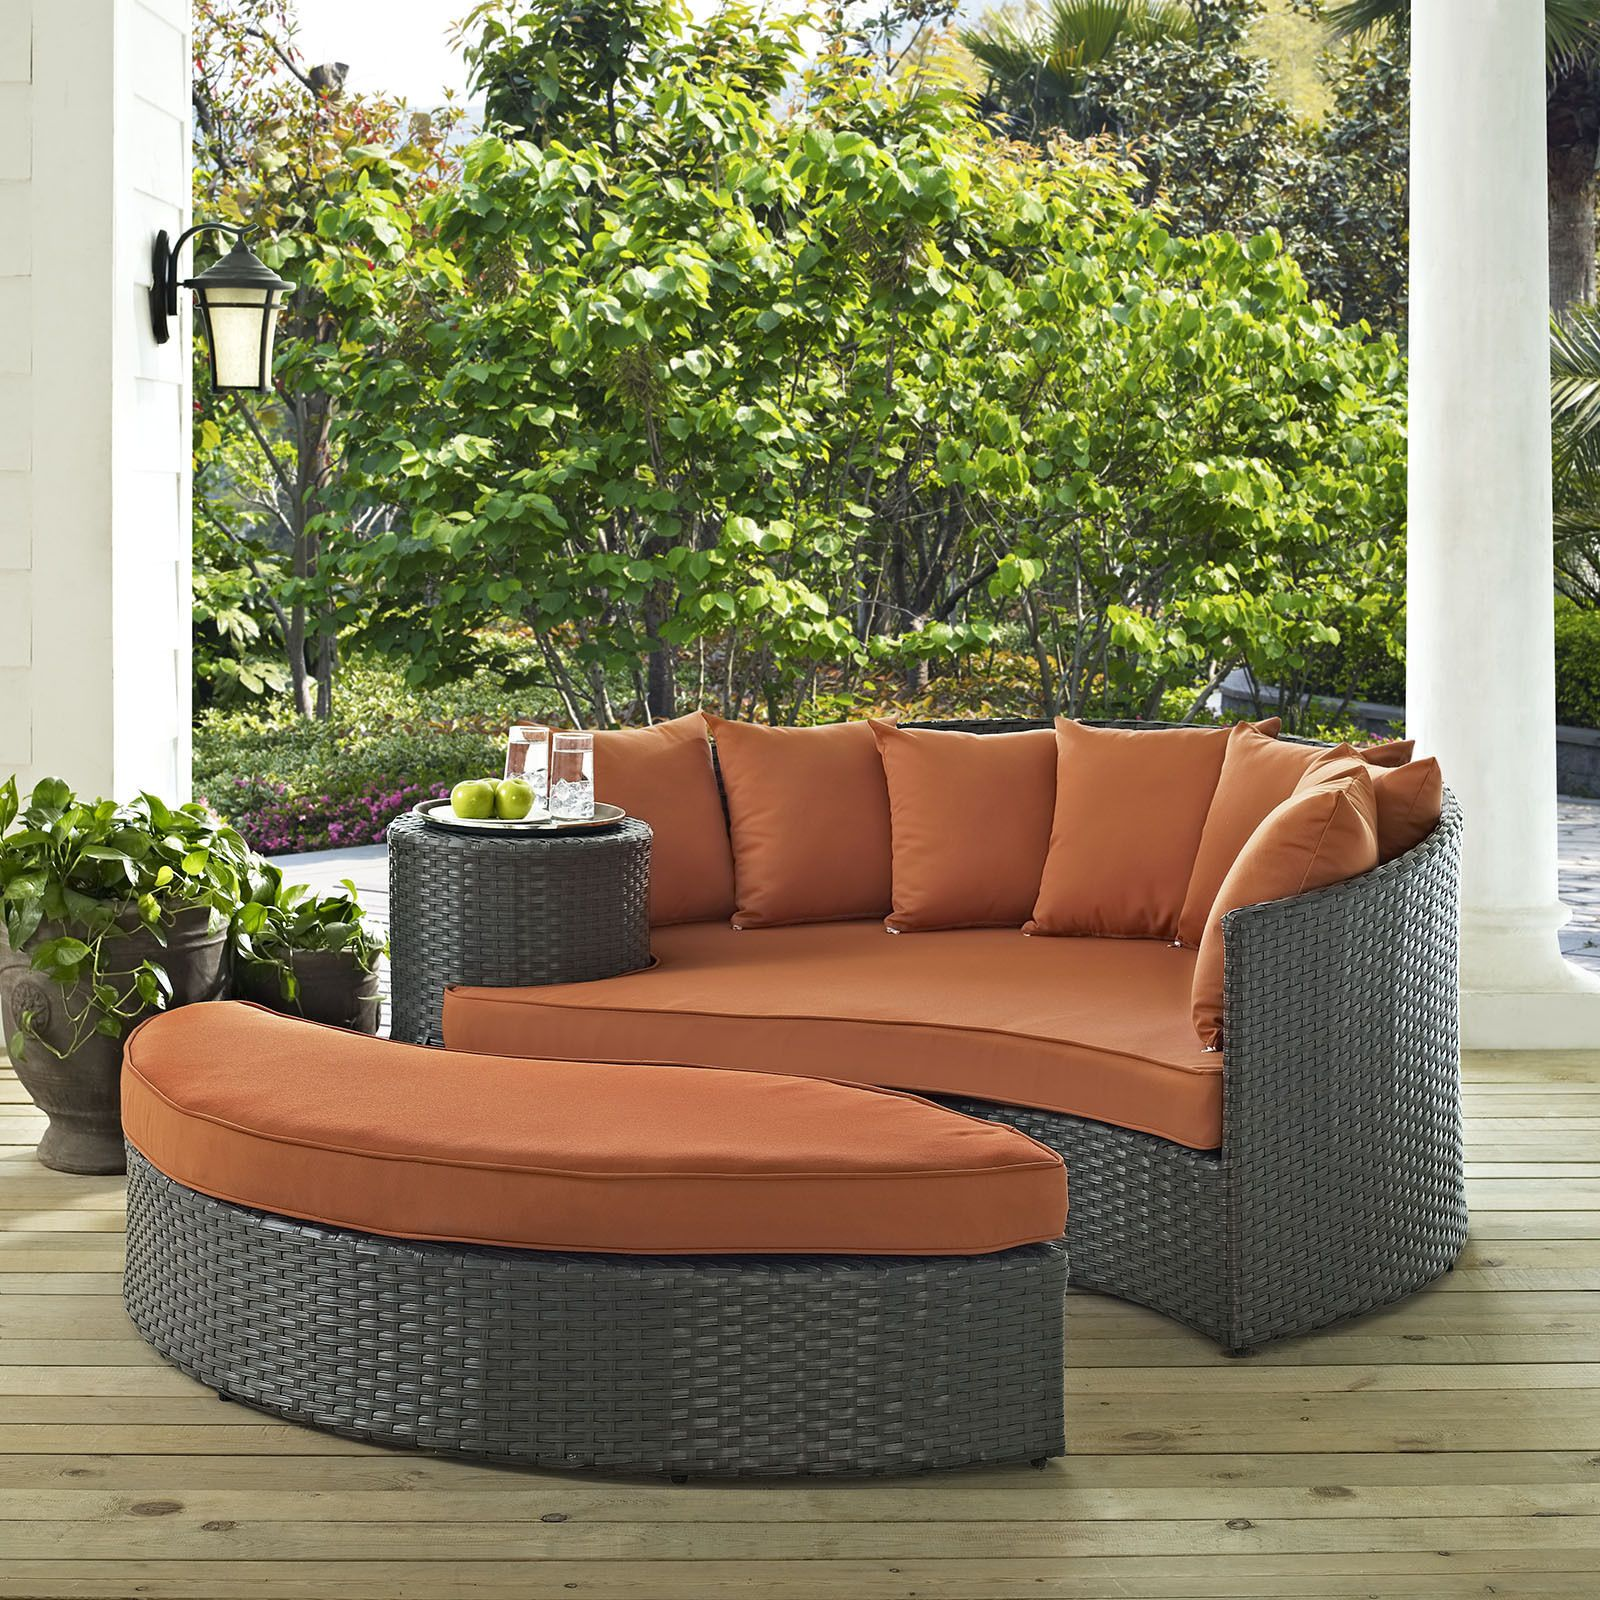 Patio Furniture Sale Free Shipping on orders over $45 Shop the